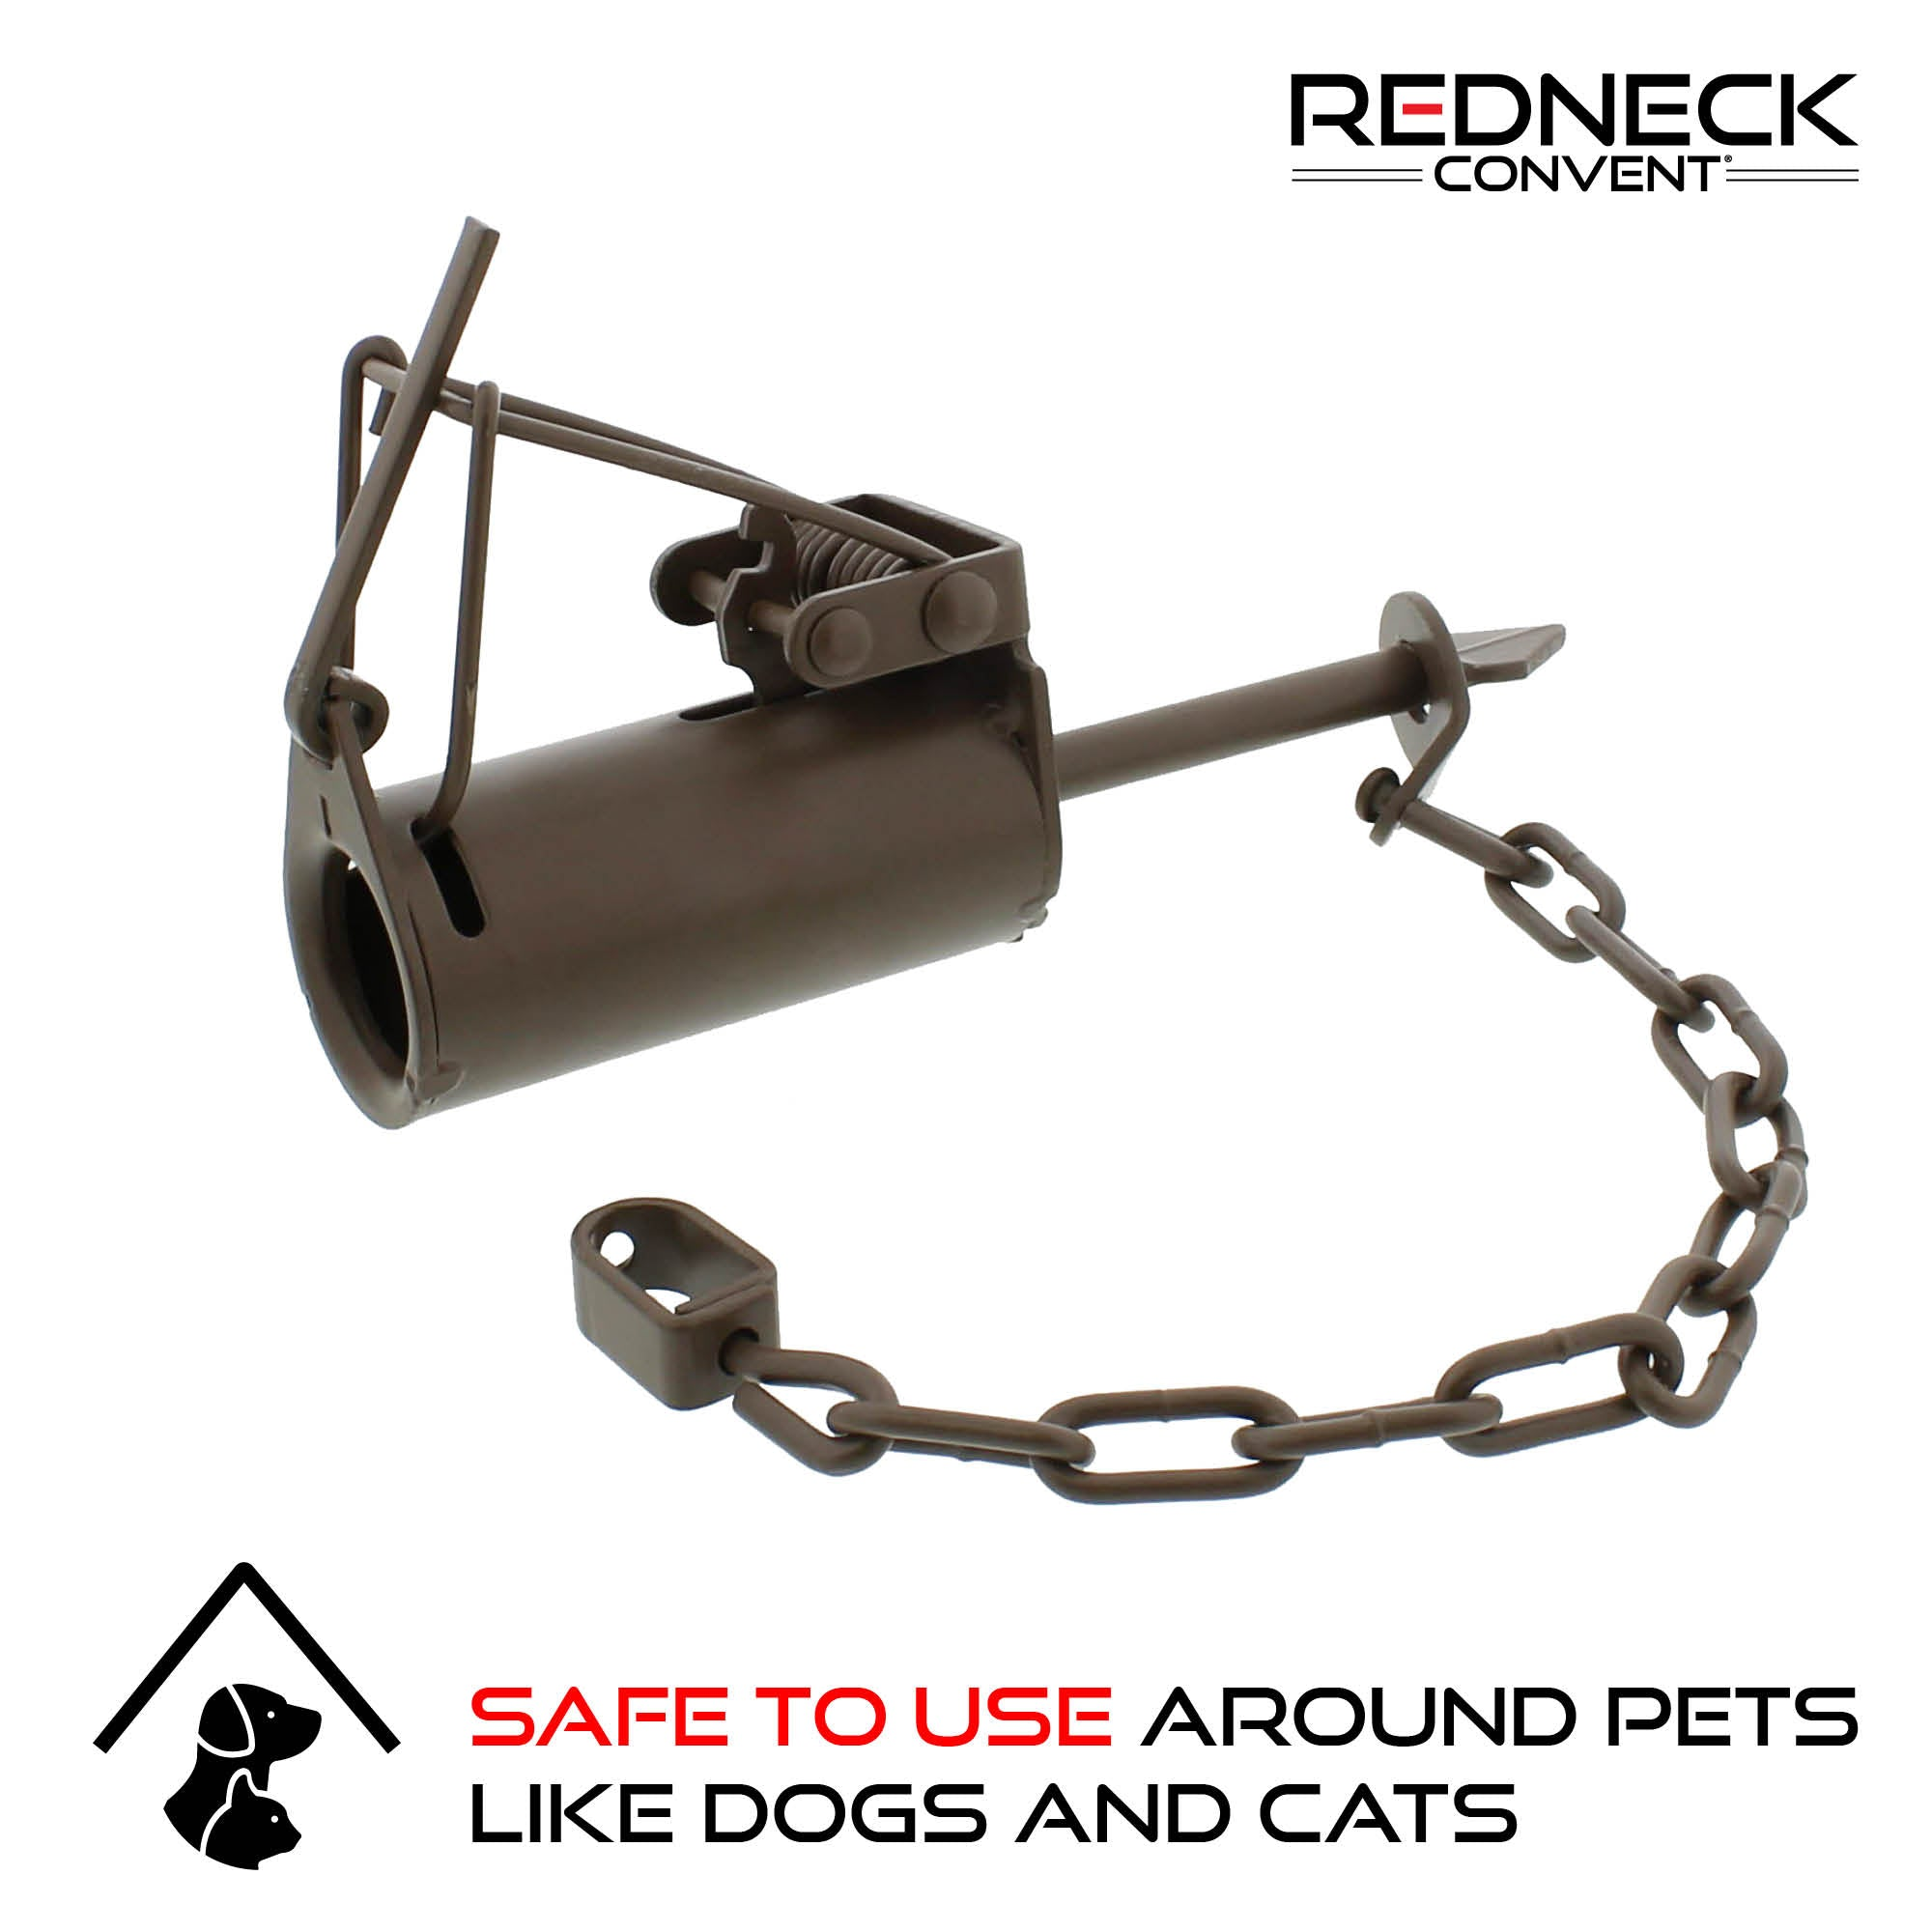 Dog-Proof DP Animal Leg Trap 2-Pack, Pet-Safe / Pet-Friendly